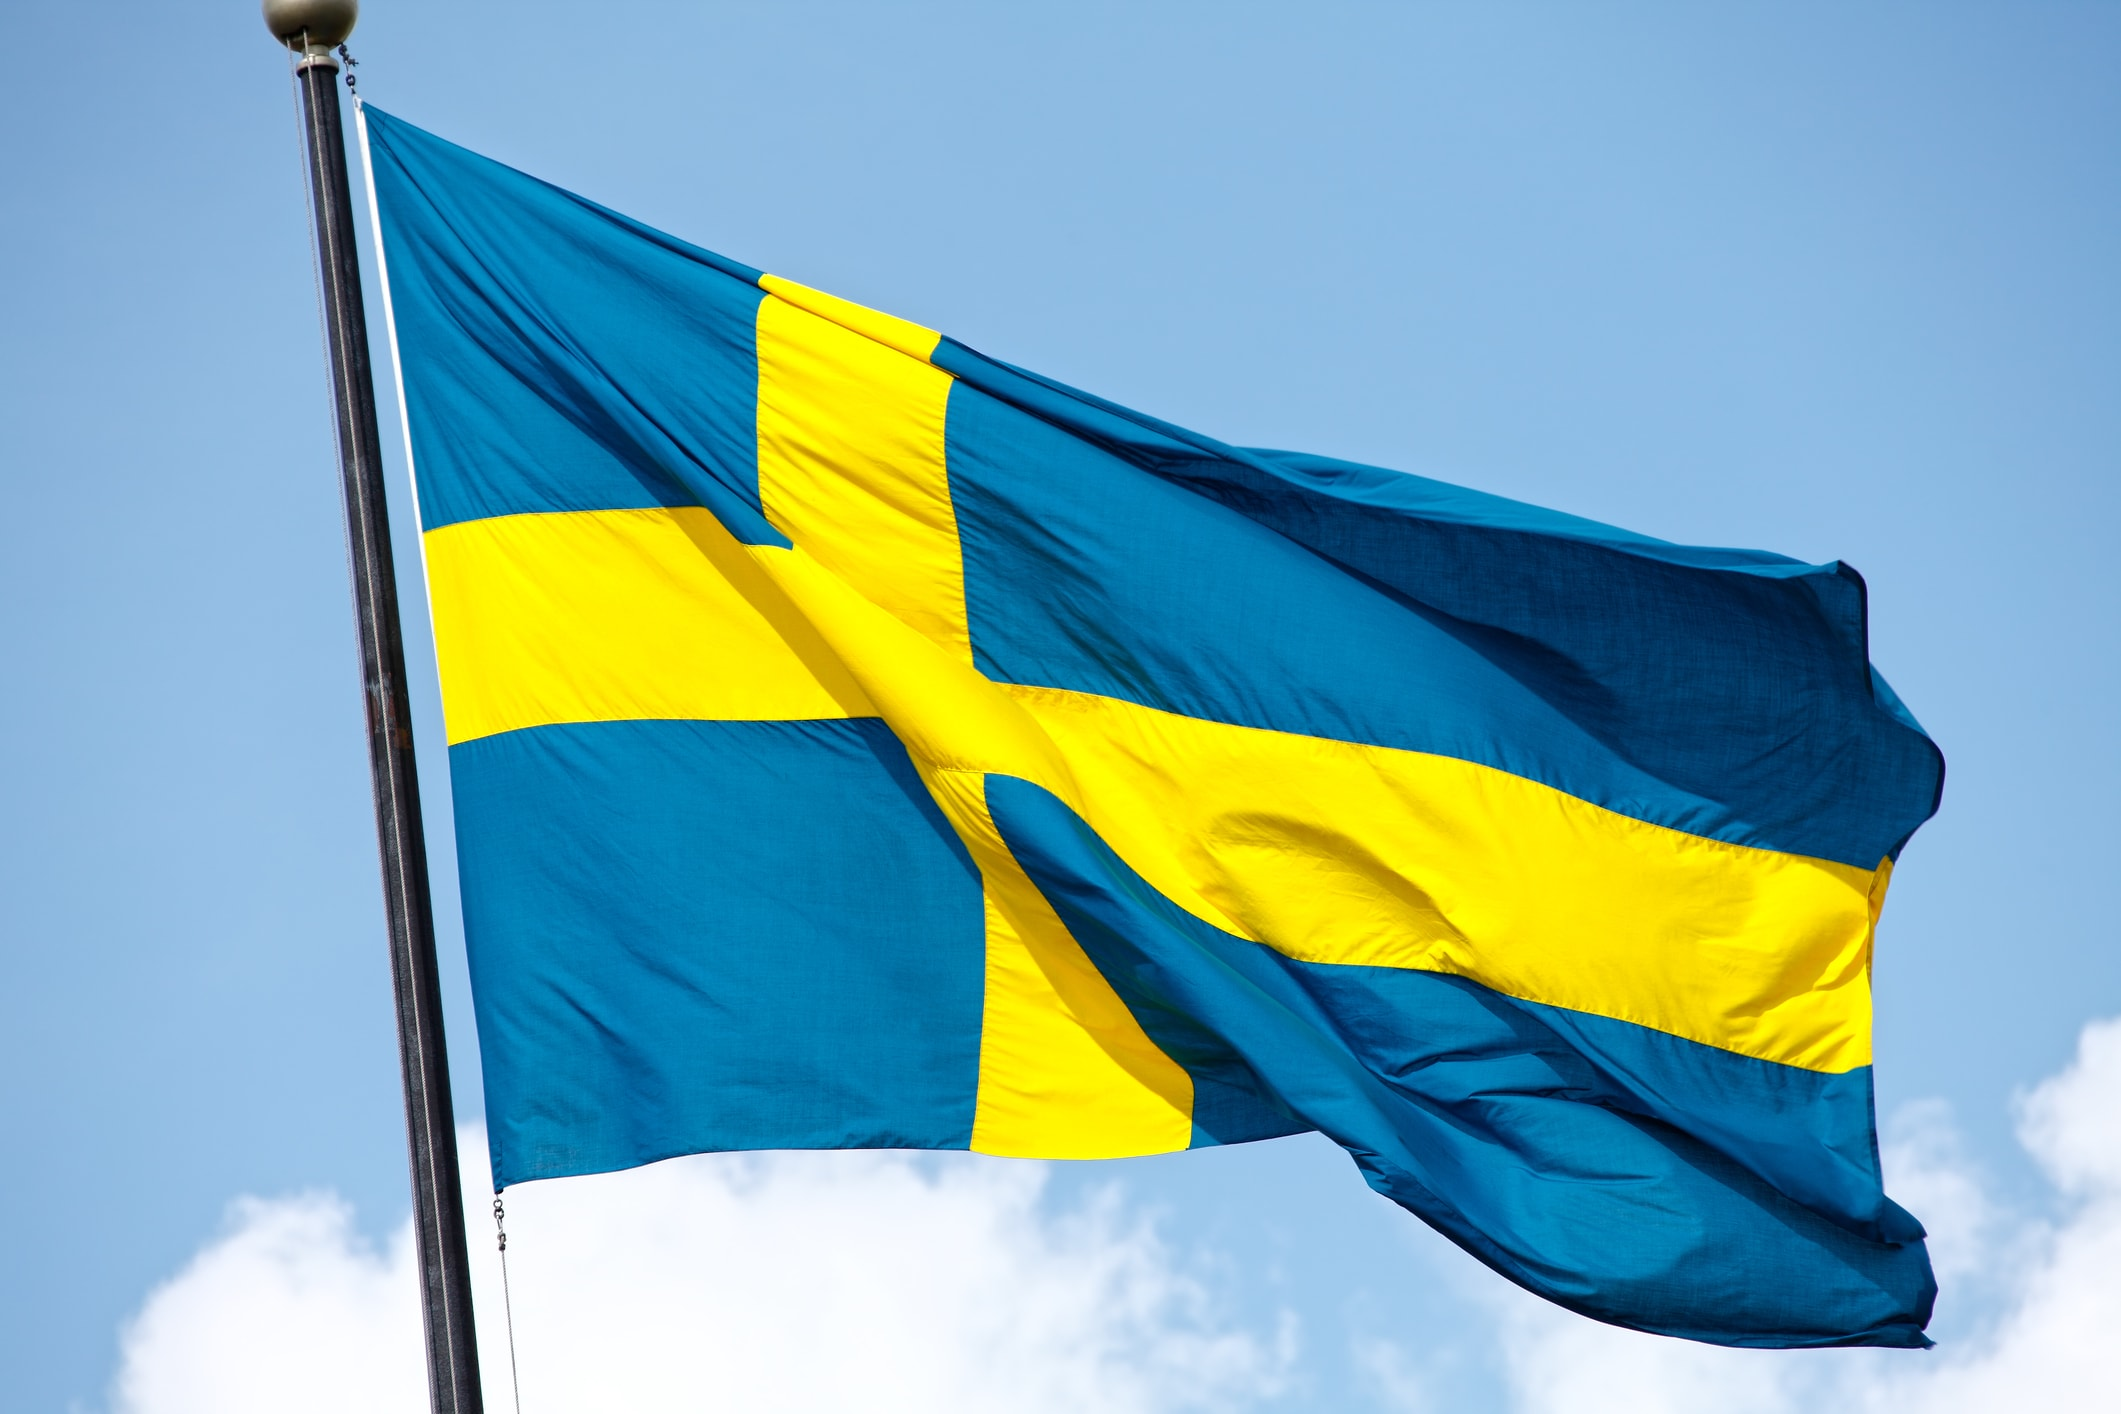 Sweden: Government has made Bitcoin its official currency